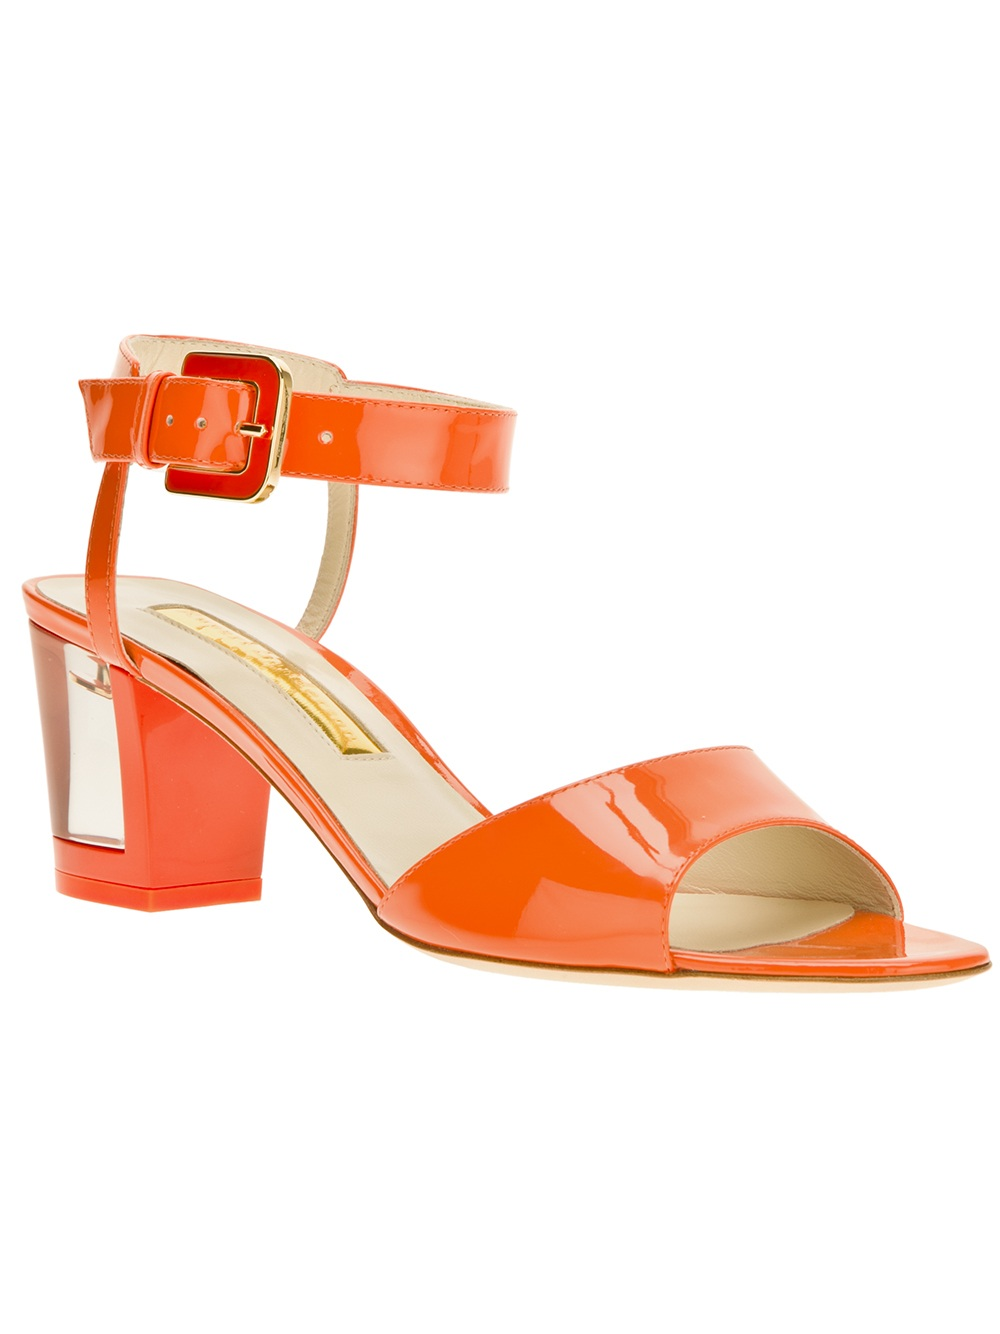 bd0143a413f Lyst - Rupert Sanderson Block Heel Sandals in Orange